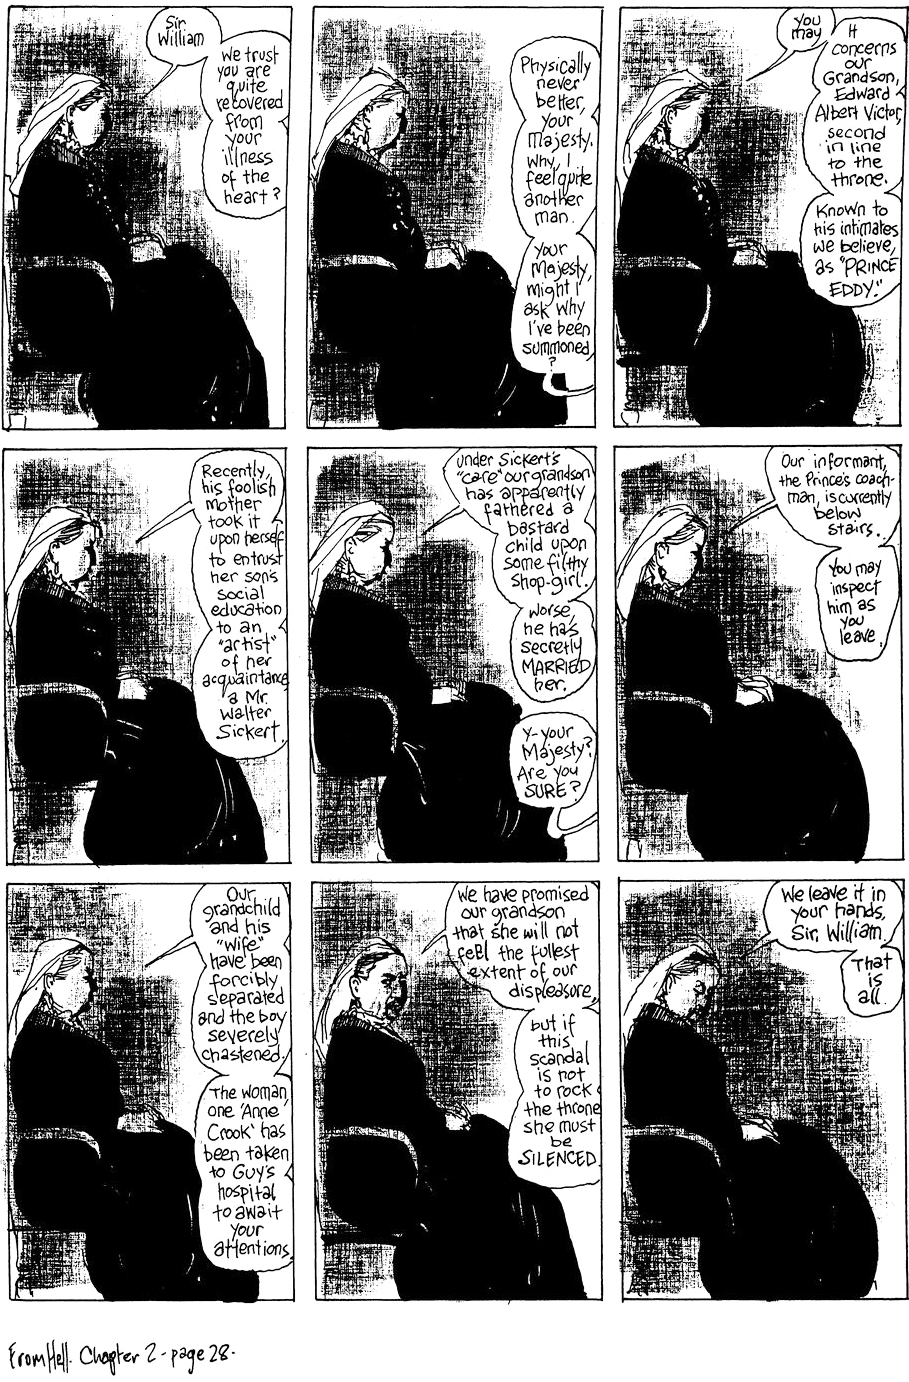 From Hell, (Eddie Campbell)